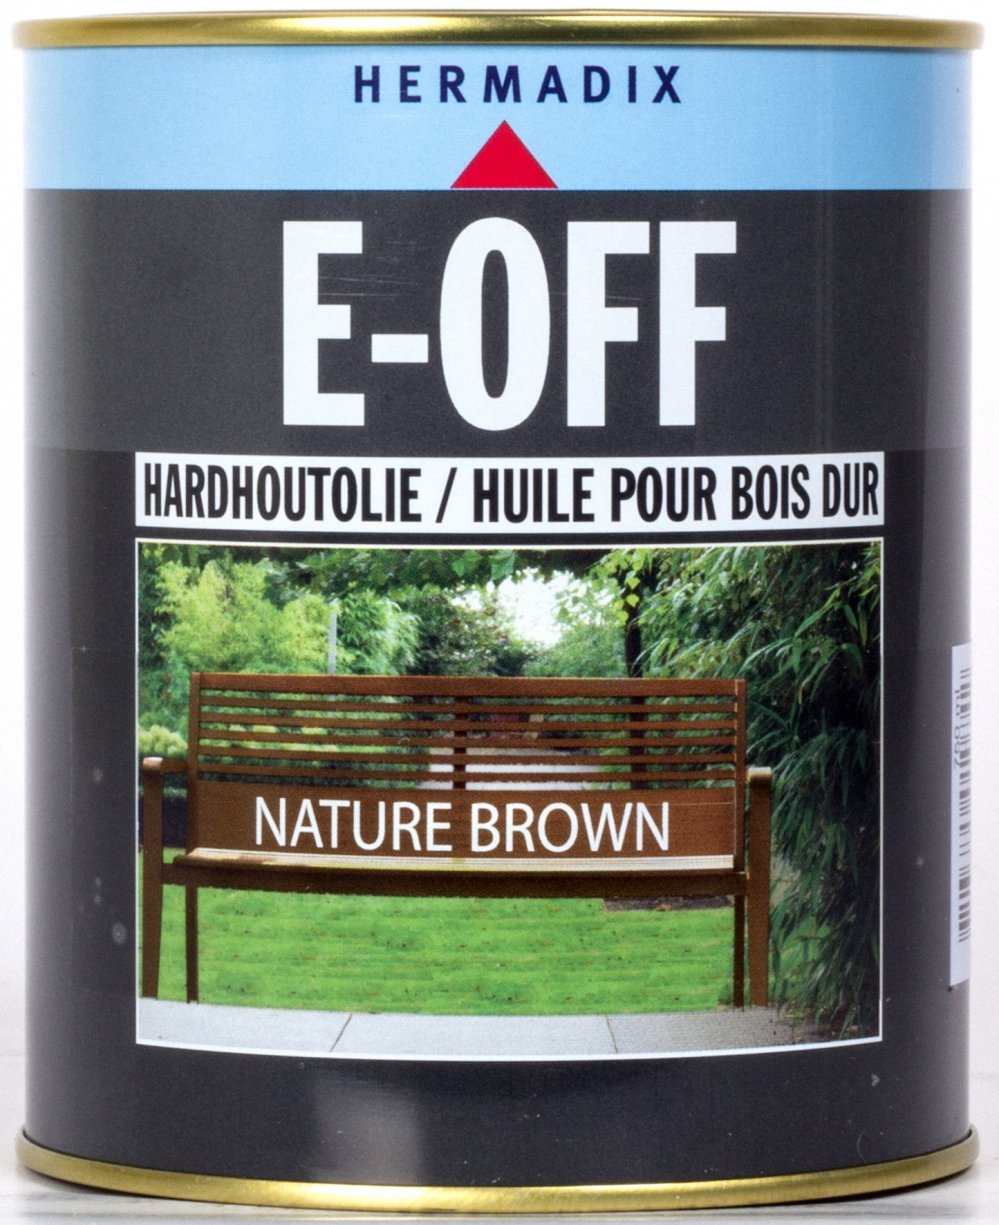 Houtolie - e-off-nature-brown-verfcompleet